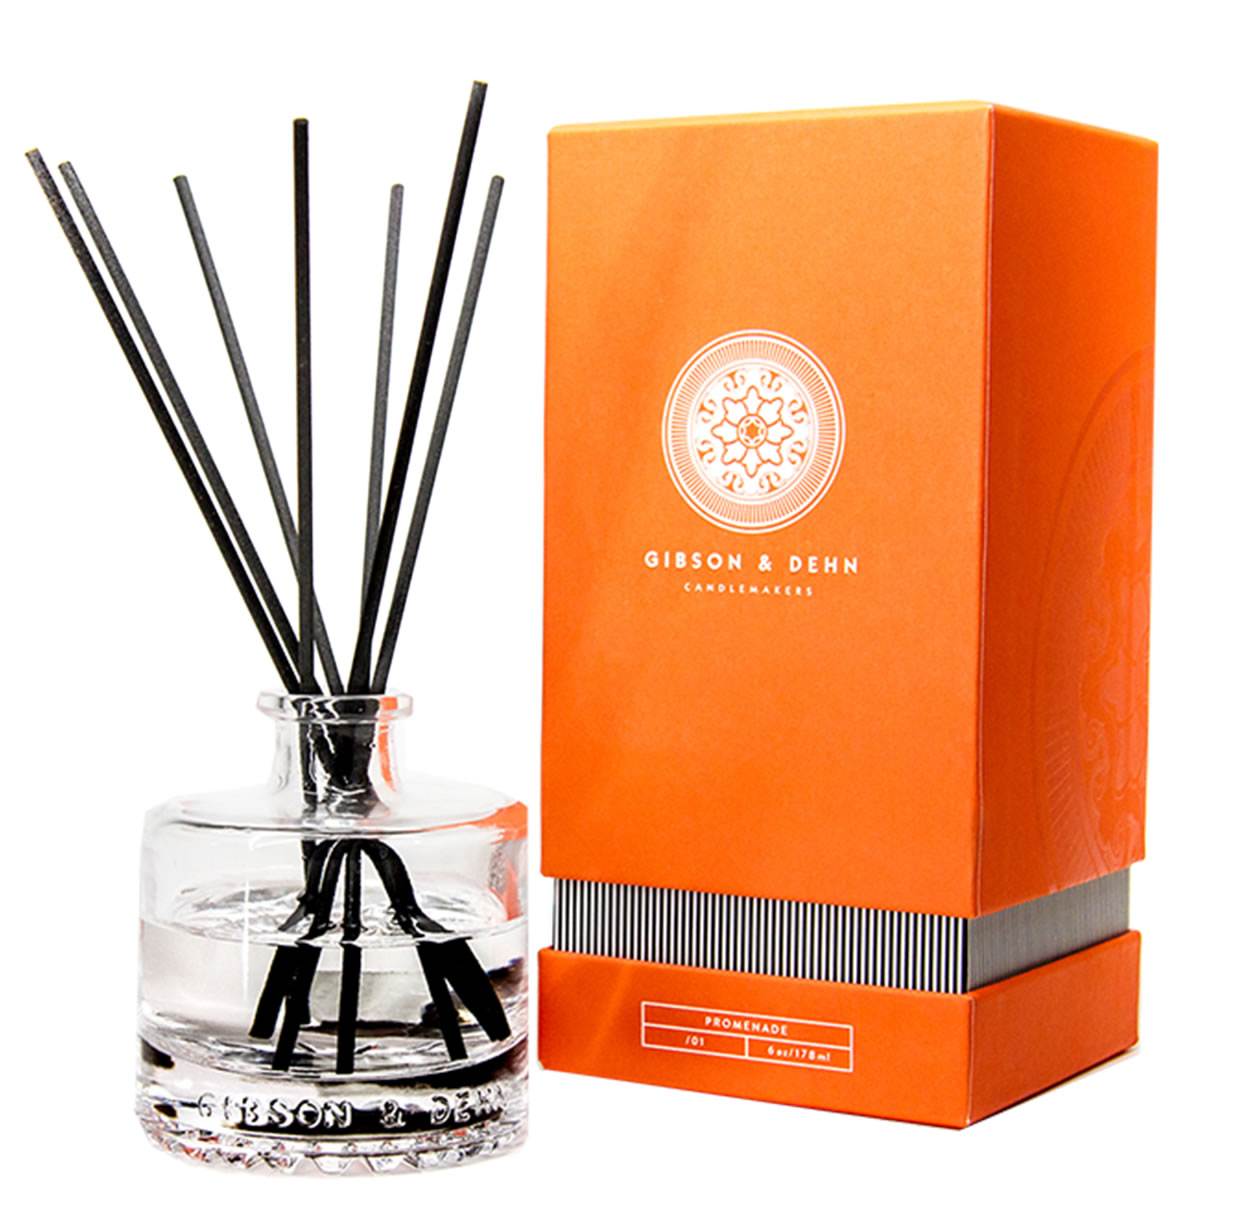 Gibson and Dehn Promenade Diffuser- Rhubarb and Quince